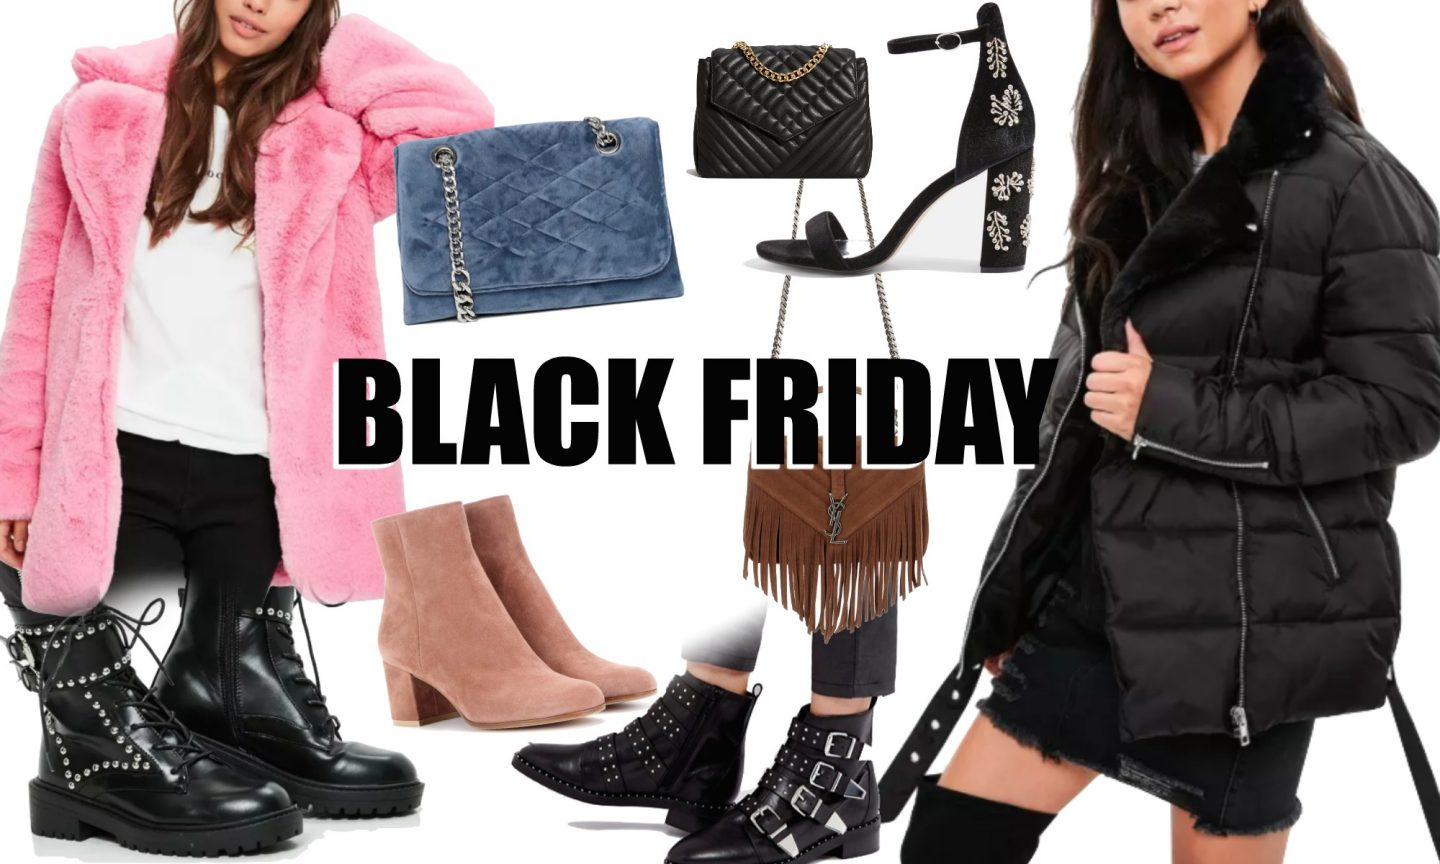 BIG SÉLECTION BLACK FRIDAY : C'EST PARTI !